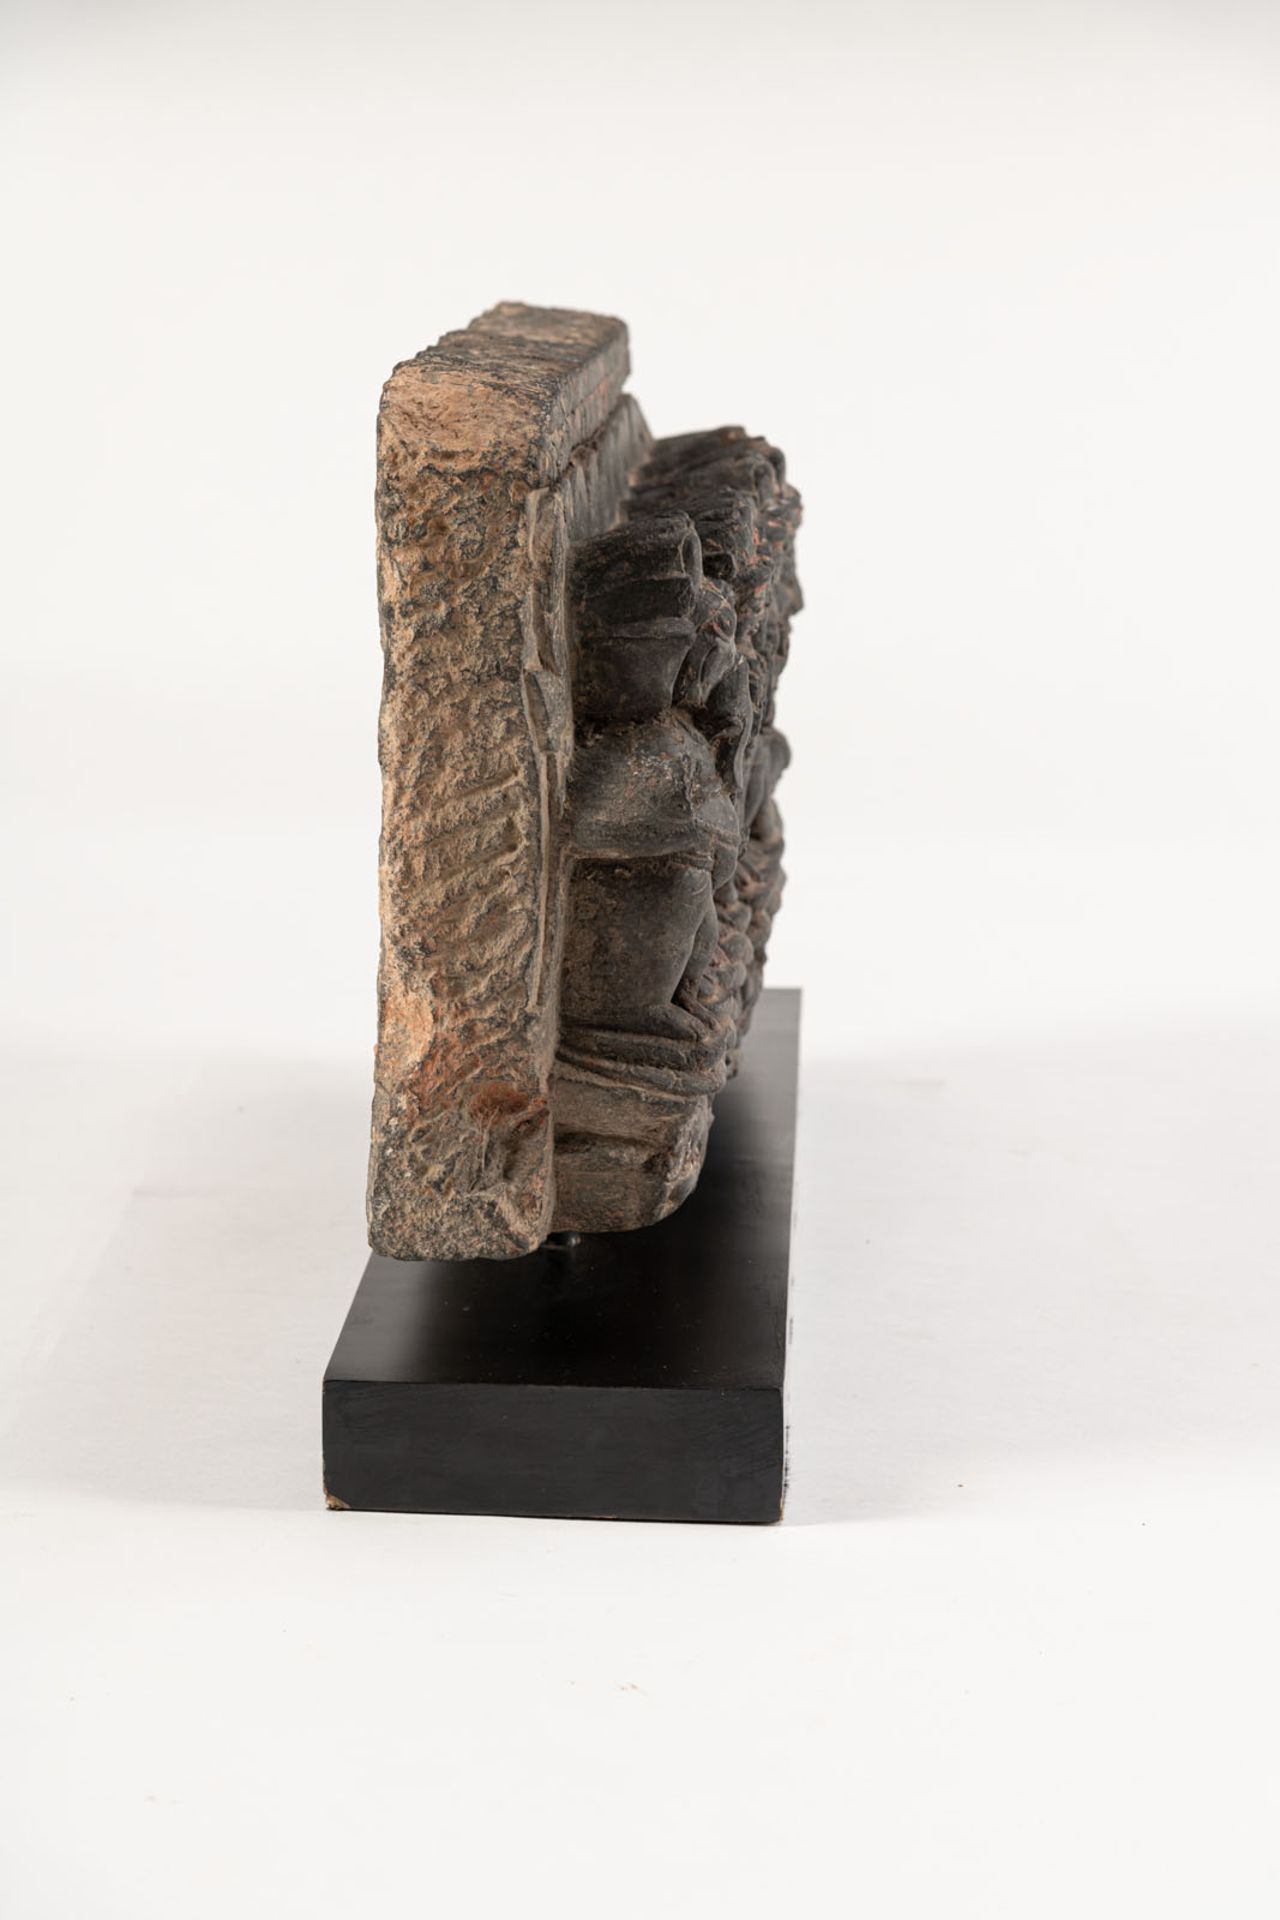 A PHYLLITE STONE STELE DEPICTING THE NINE PLANETS, NAVAGRAHA - Image 4 of 4